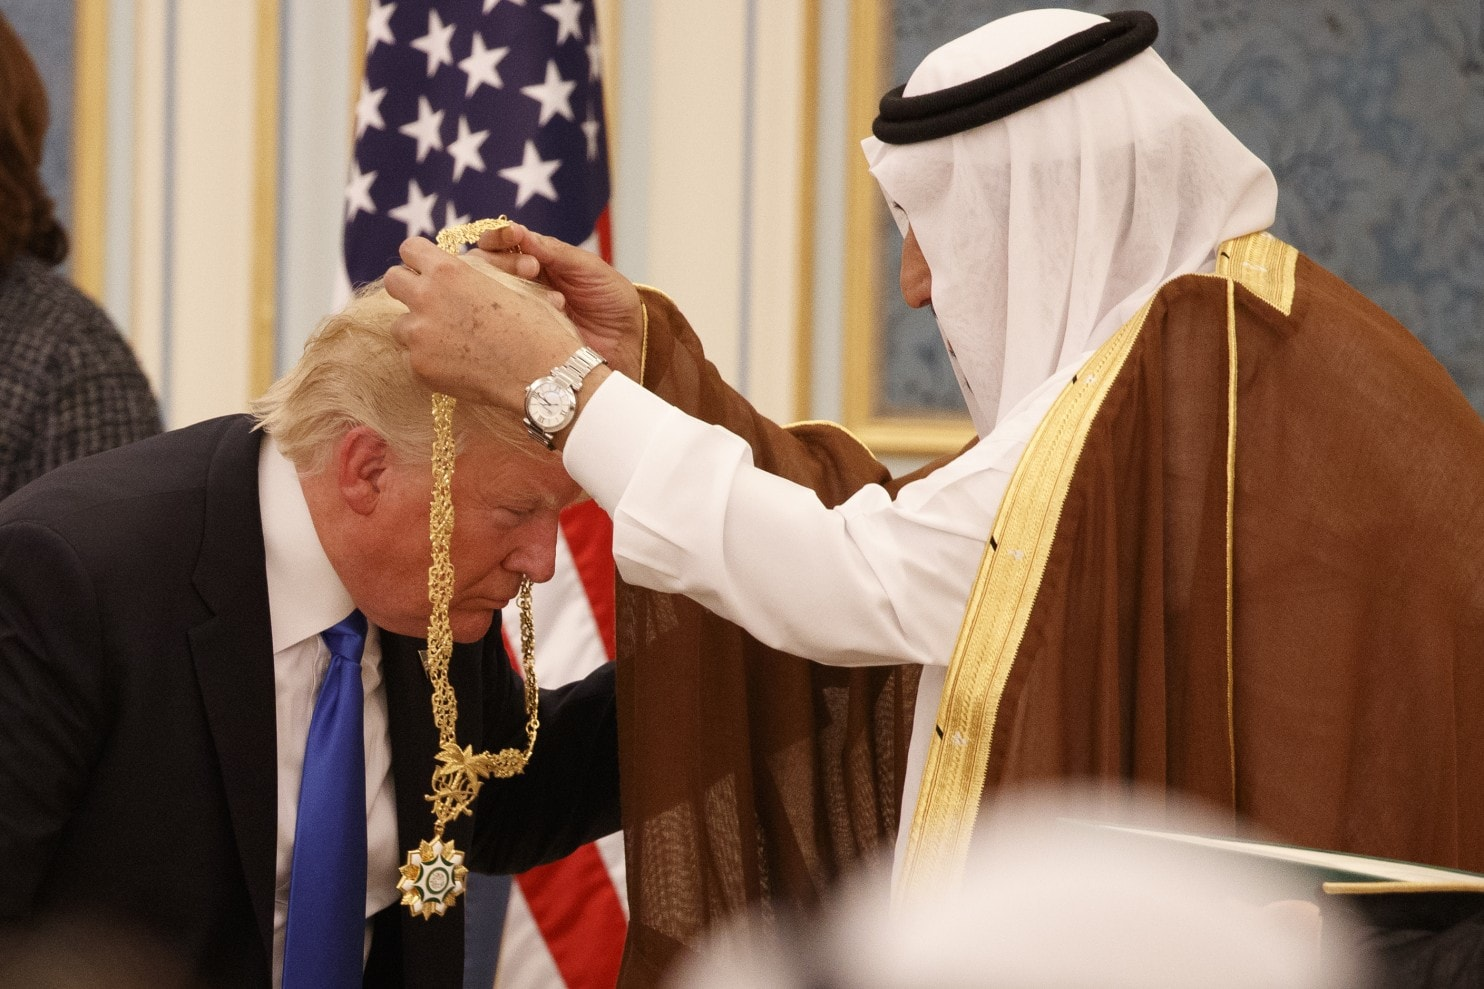 Khashoggi Crisis: (Re)Shaping US Politics and Relations with Saudi Arabia